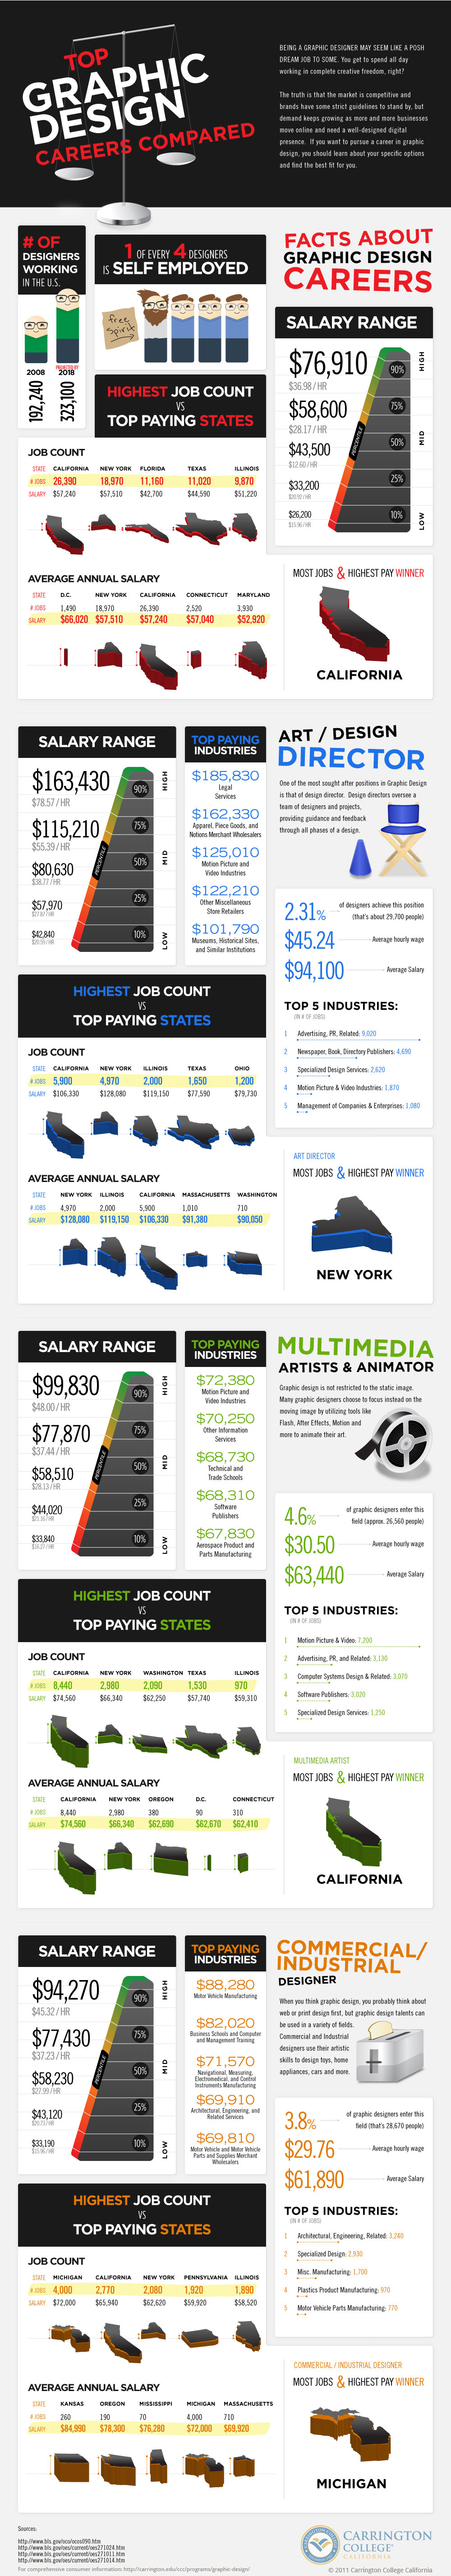 15 Infographic Information Graphic Design Career Images